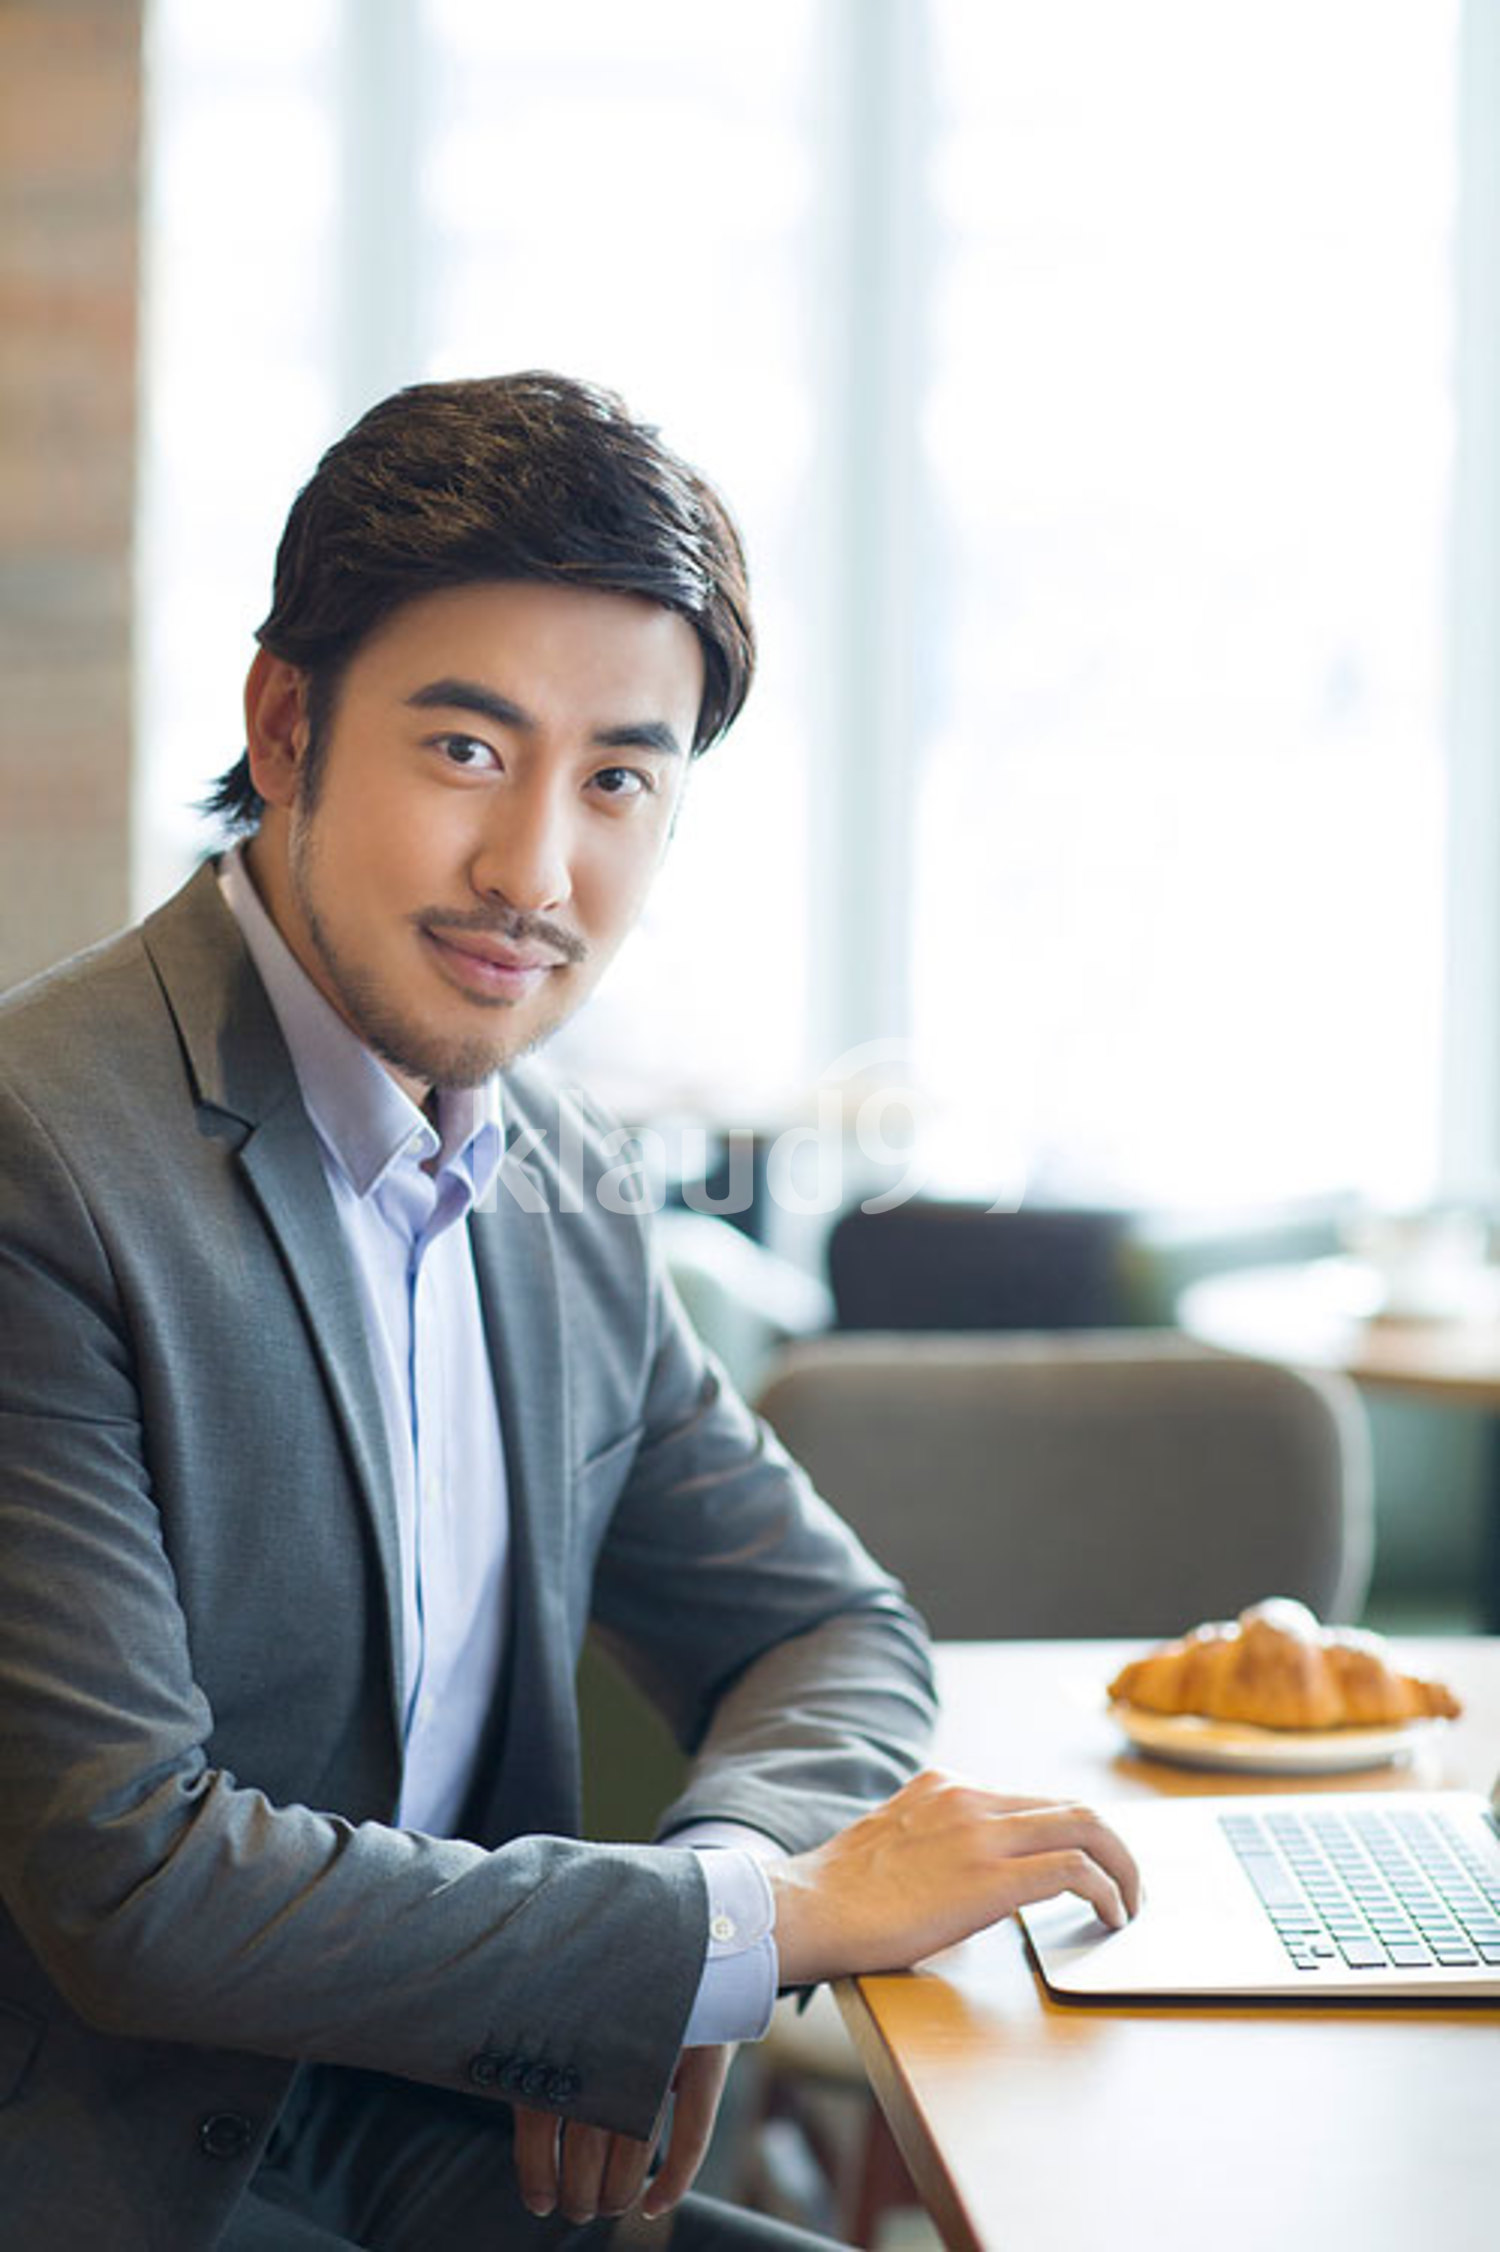 Chinese businessman working with laptop in café